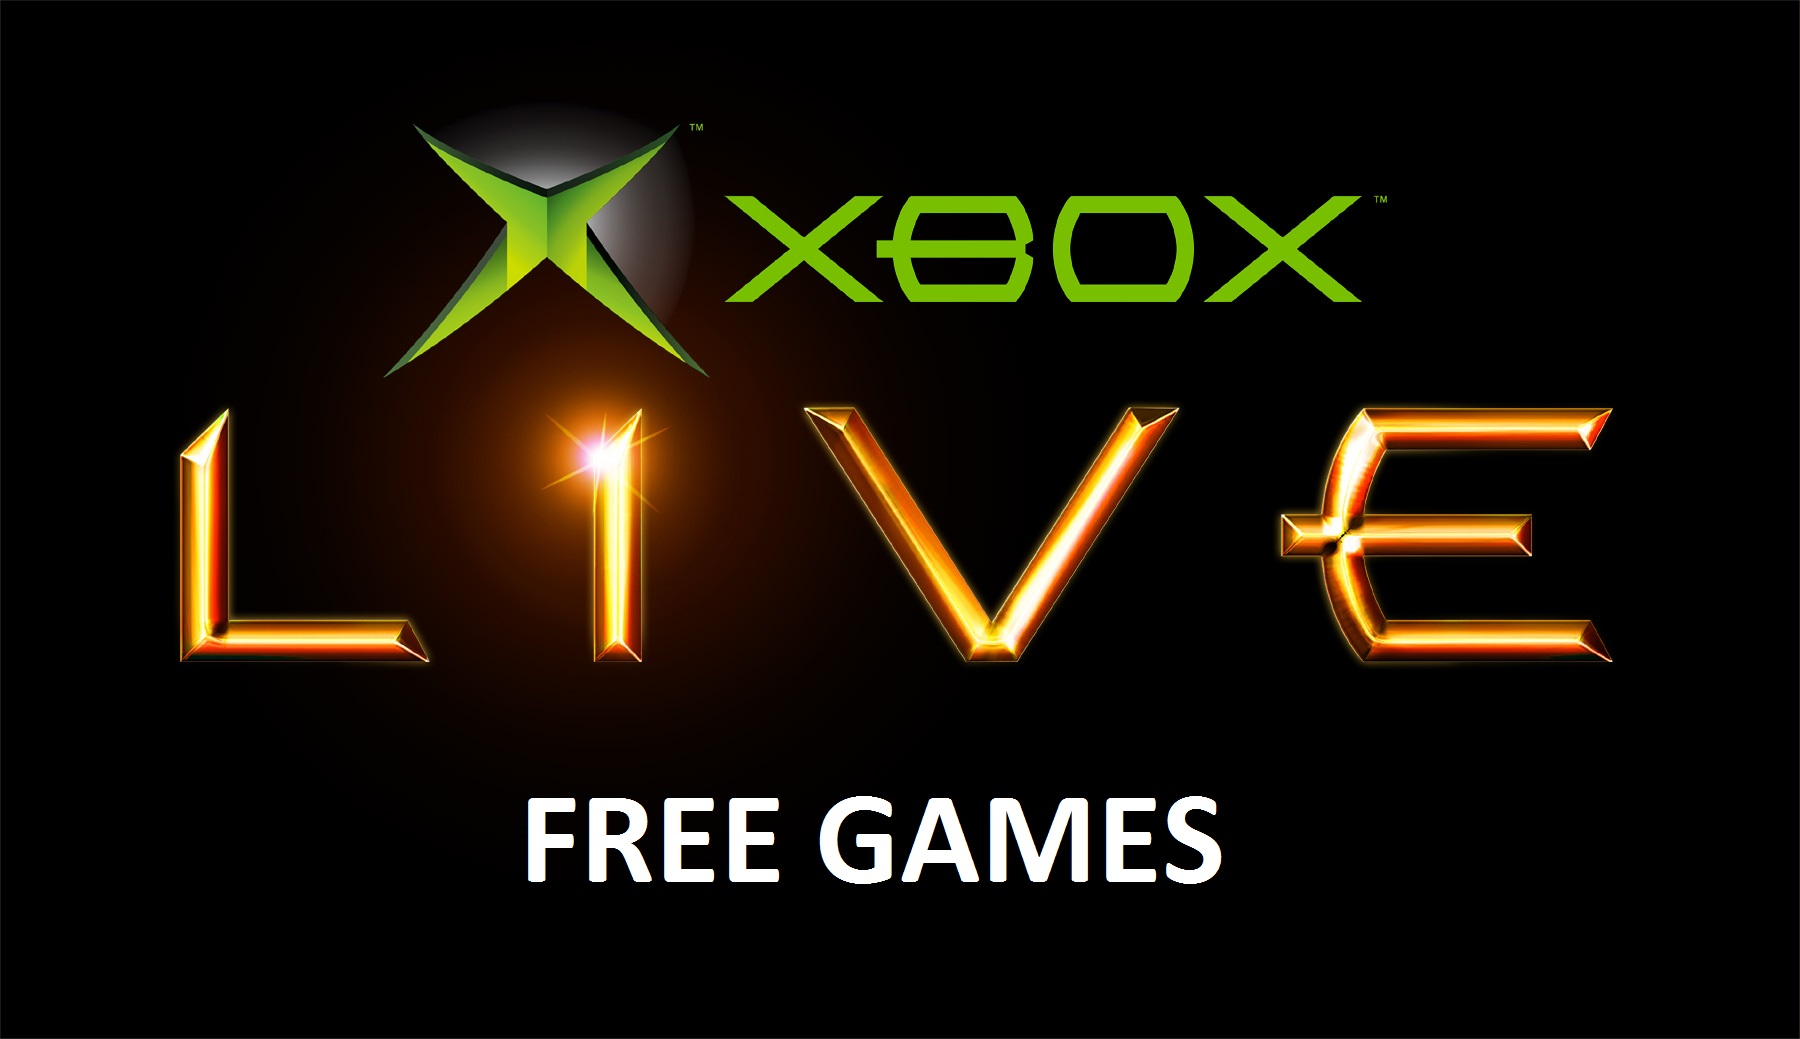 live games with gold